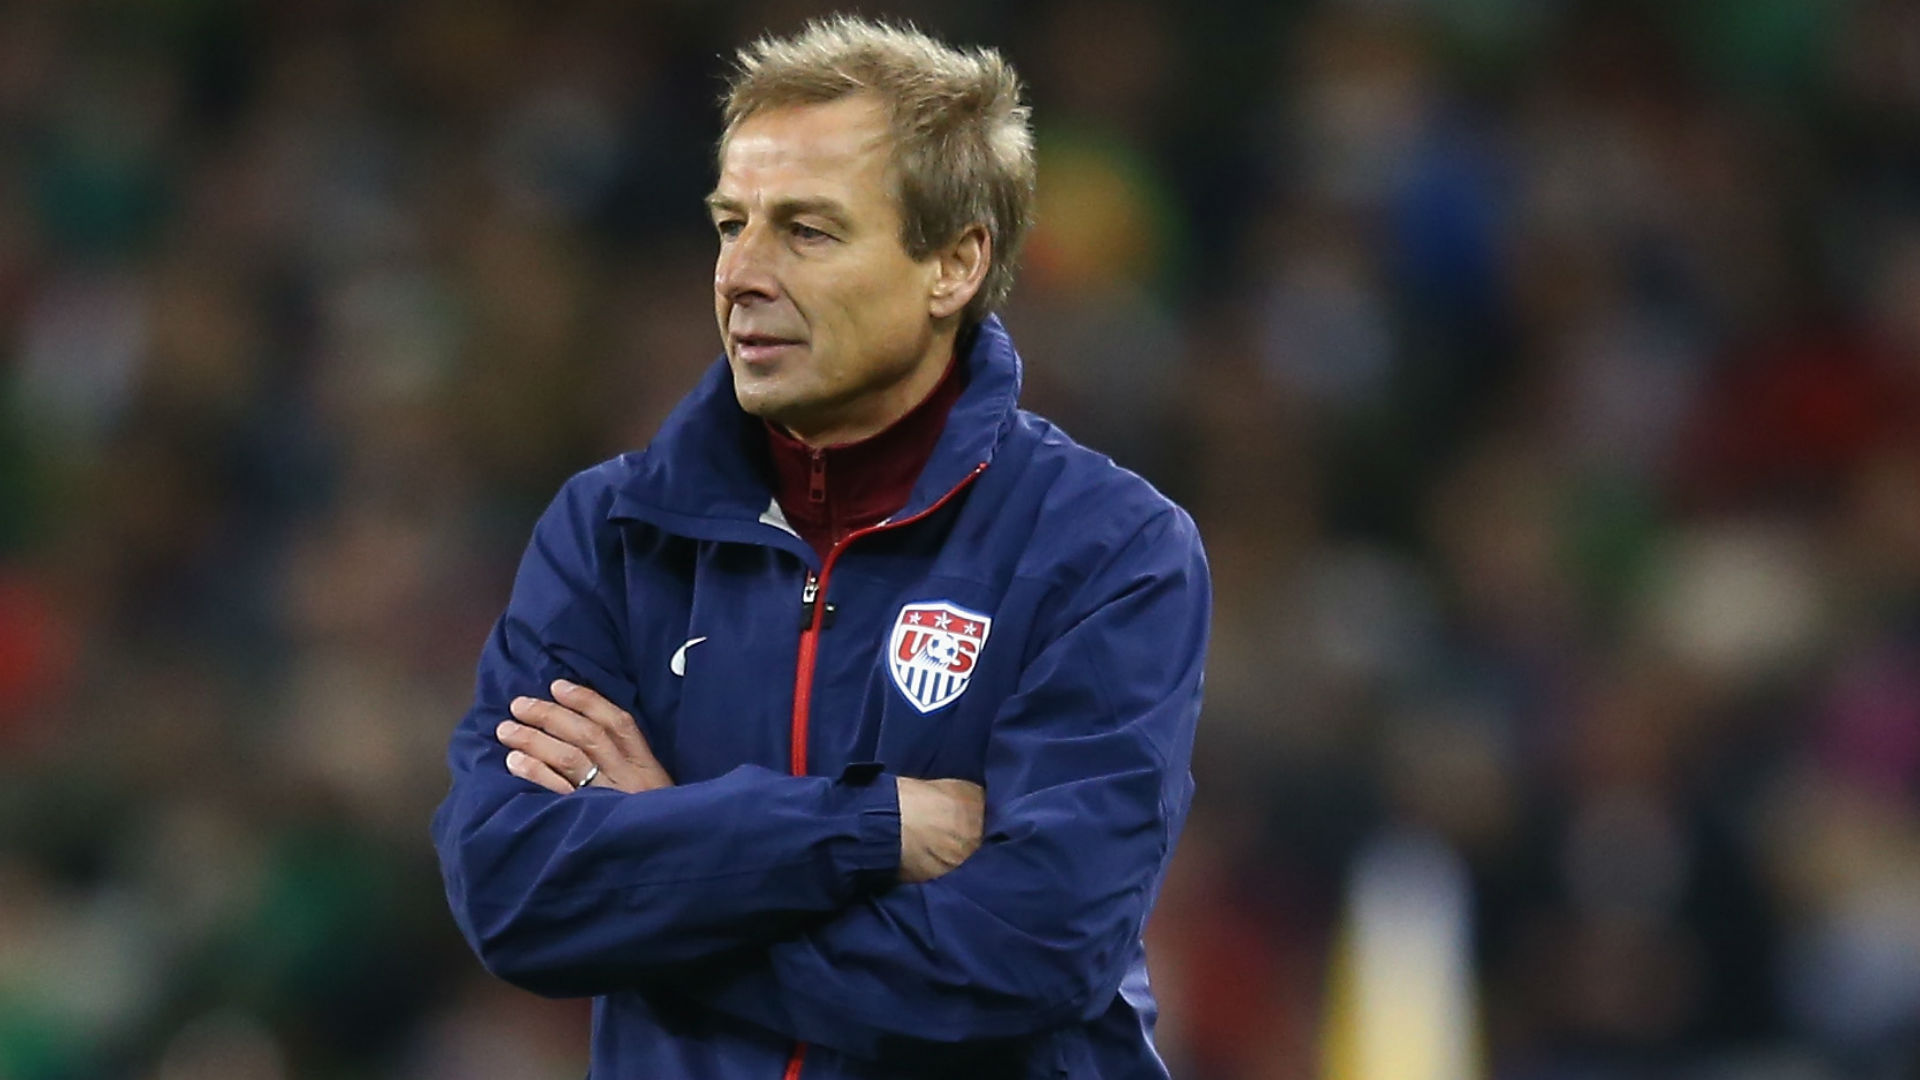 USA large favorites in Friday's friendly vs. Guatemala